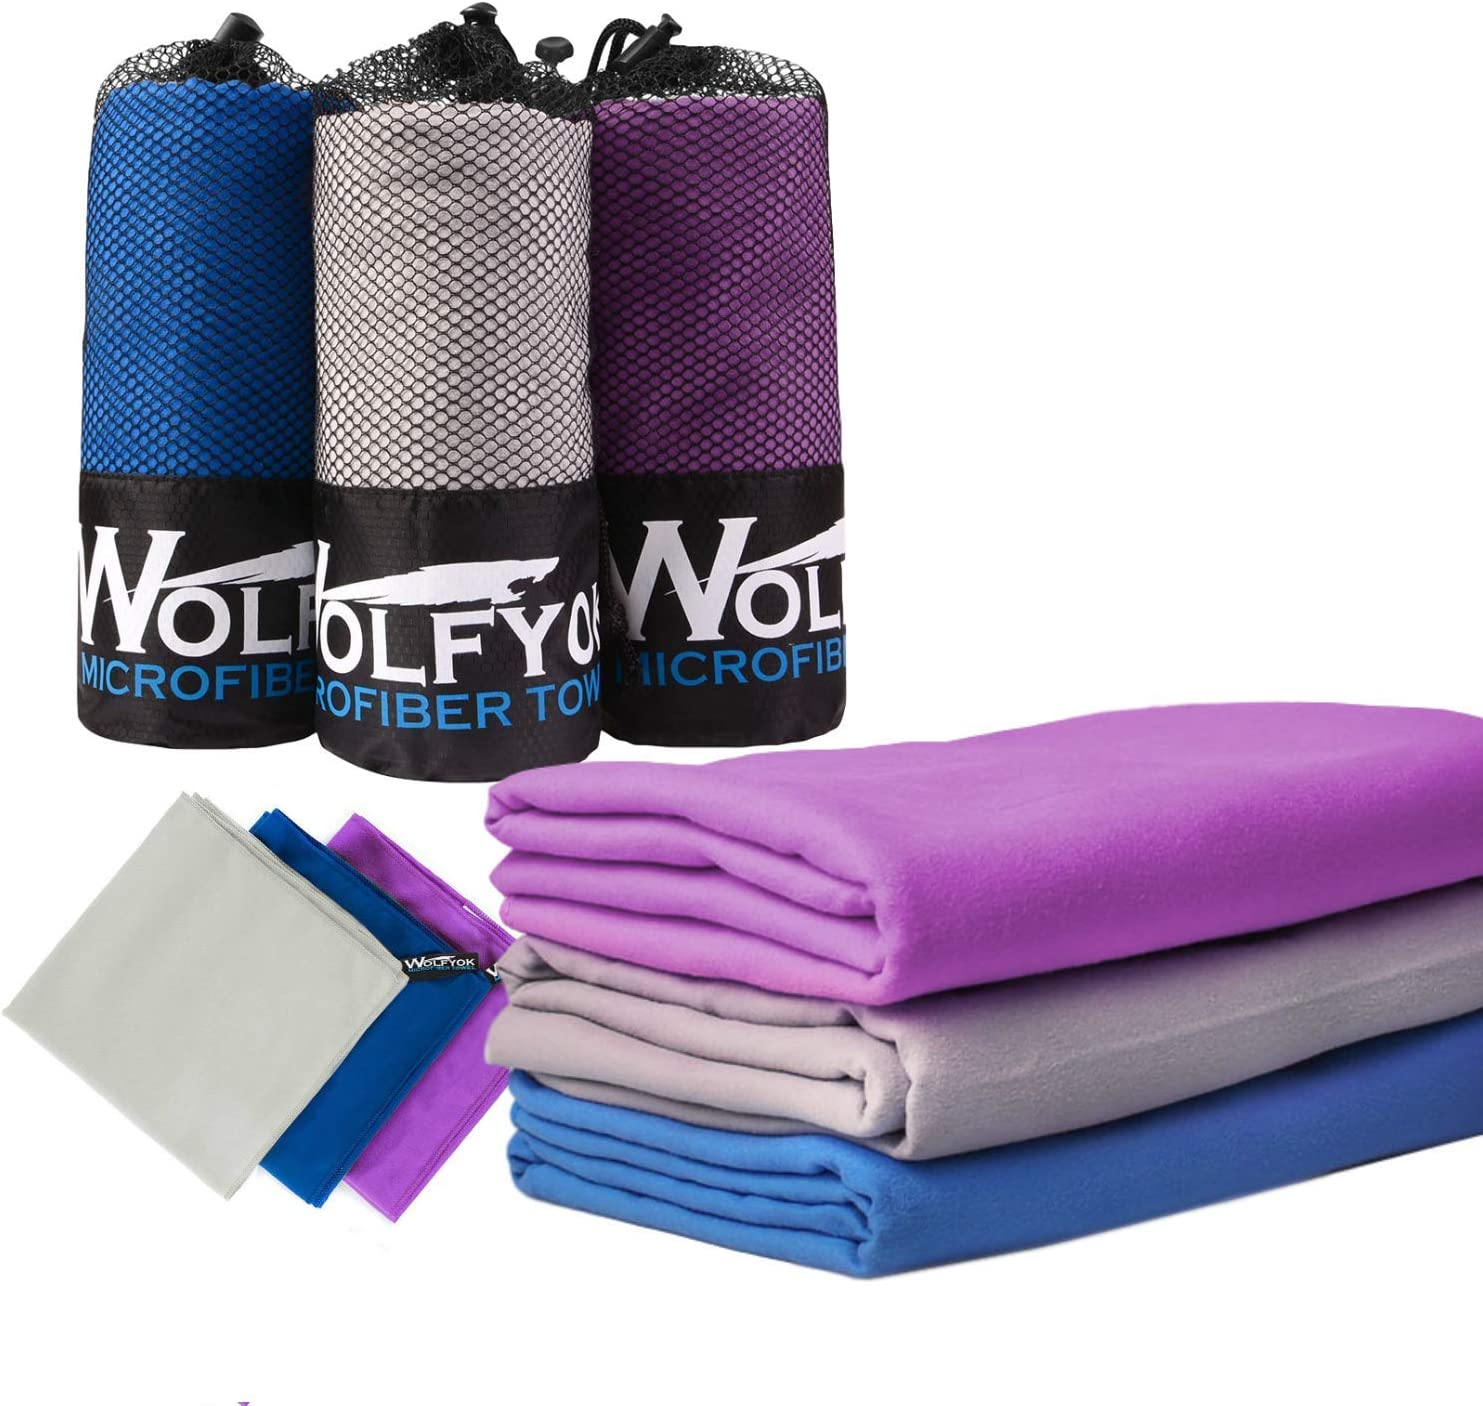 """Wolfyok 2 Pack Microfiber Travel Sports Towel XL Ultra Absorbent and Quick Drying Swimming Towel (58"""" X 30"""") with Hand/Face Towel (24"""" X16"""") for Sports, Backpacking, Beach, Yoga or Bath"""